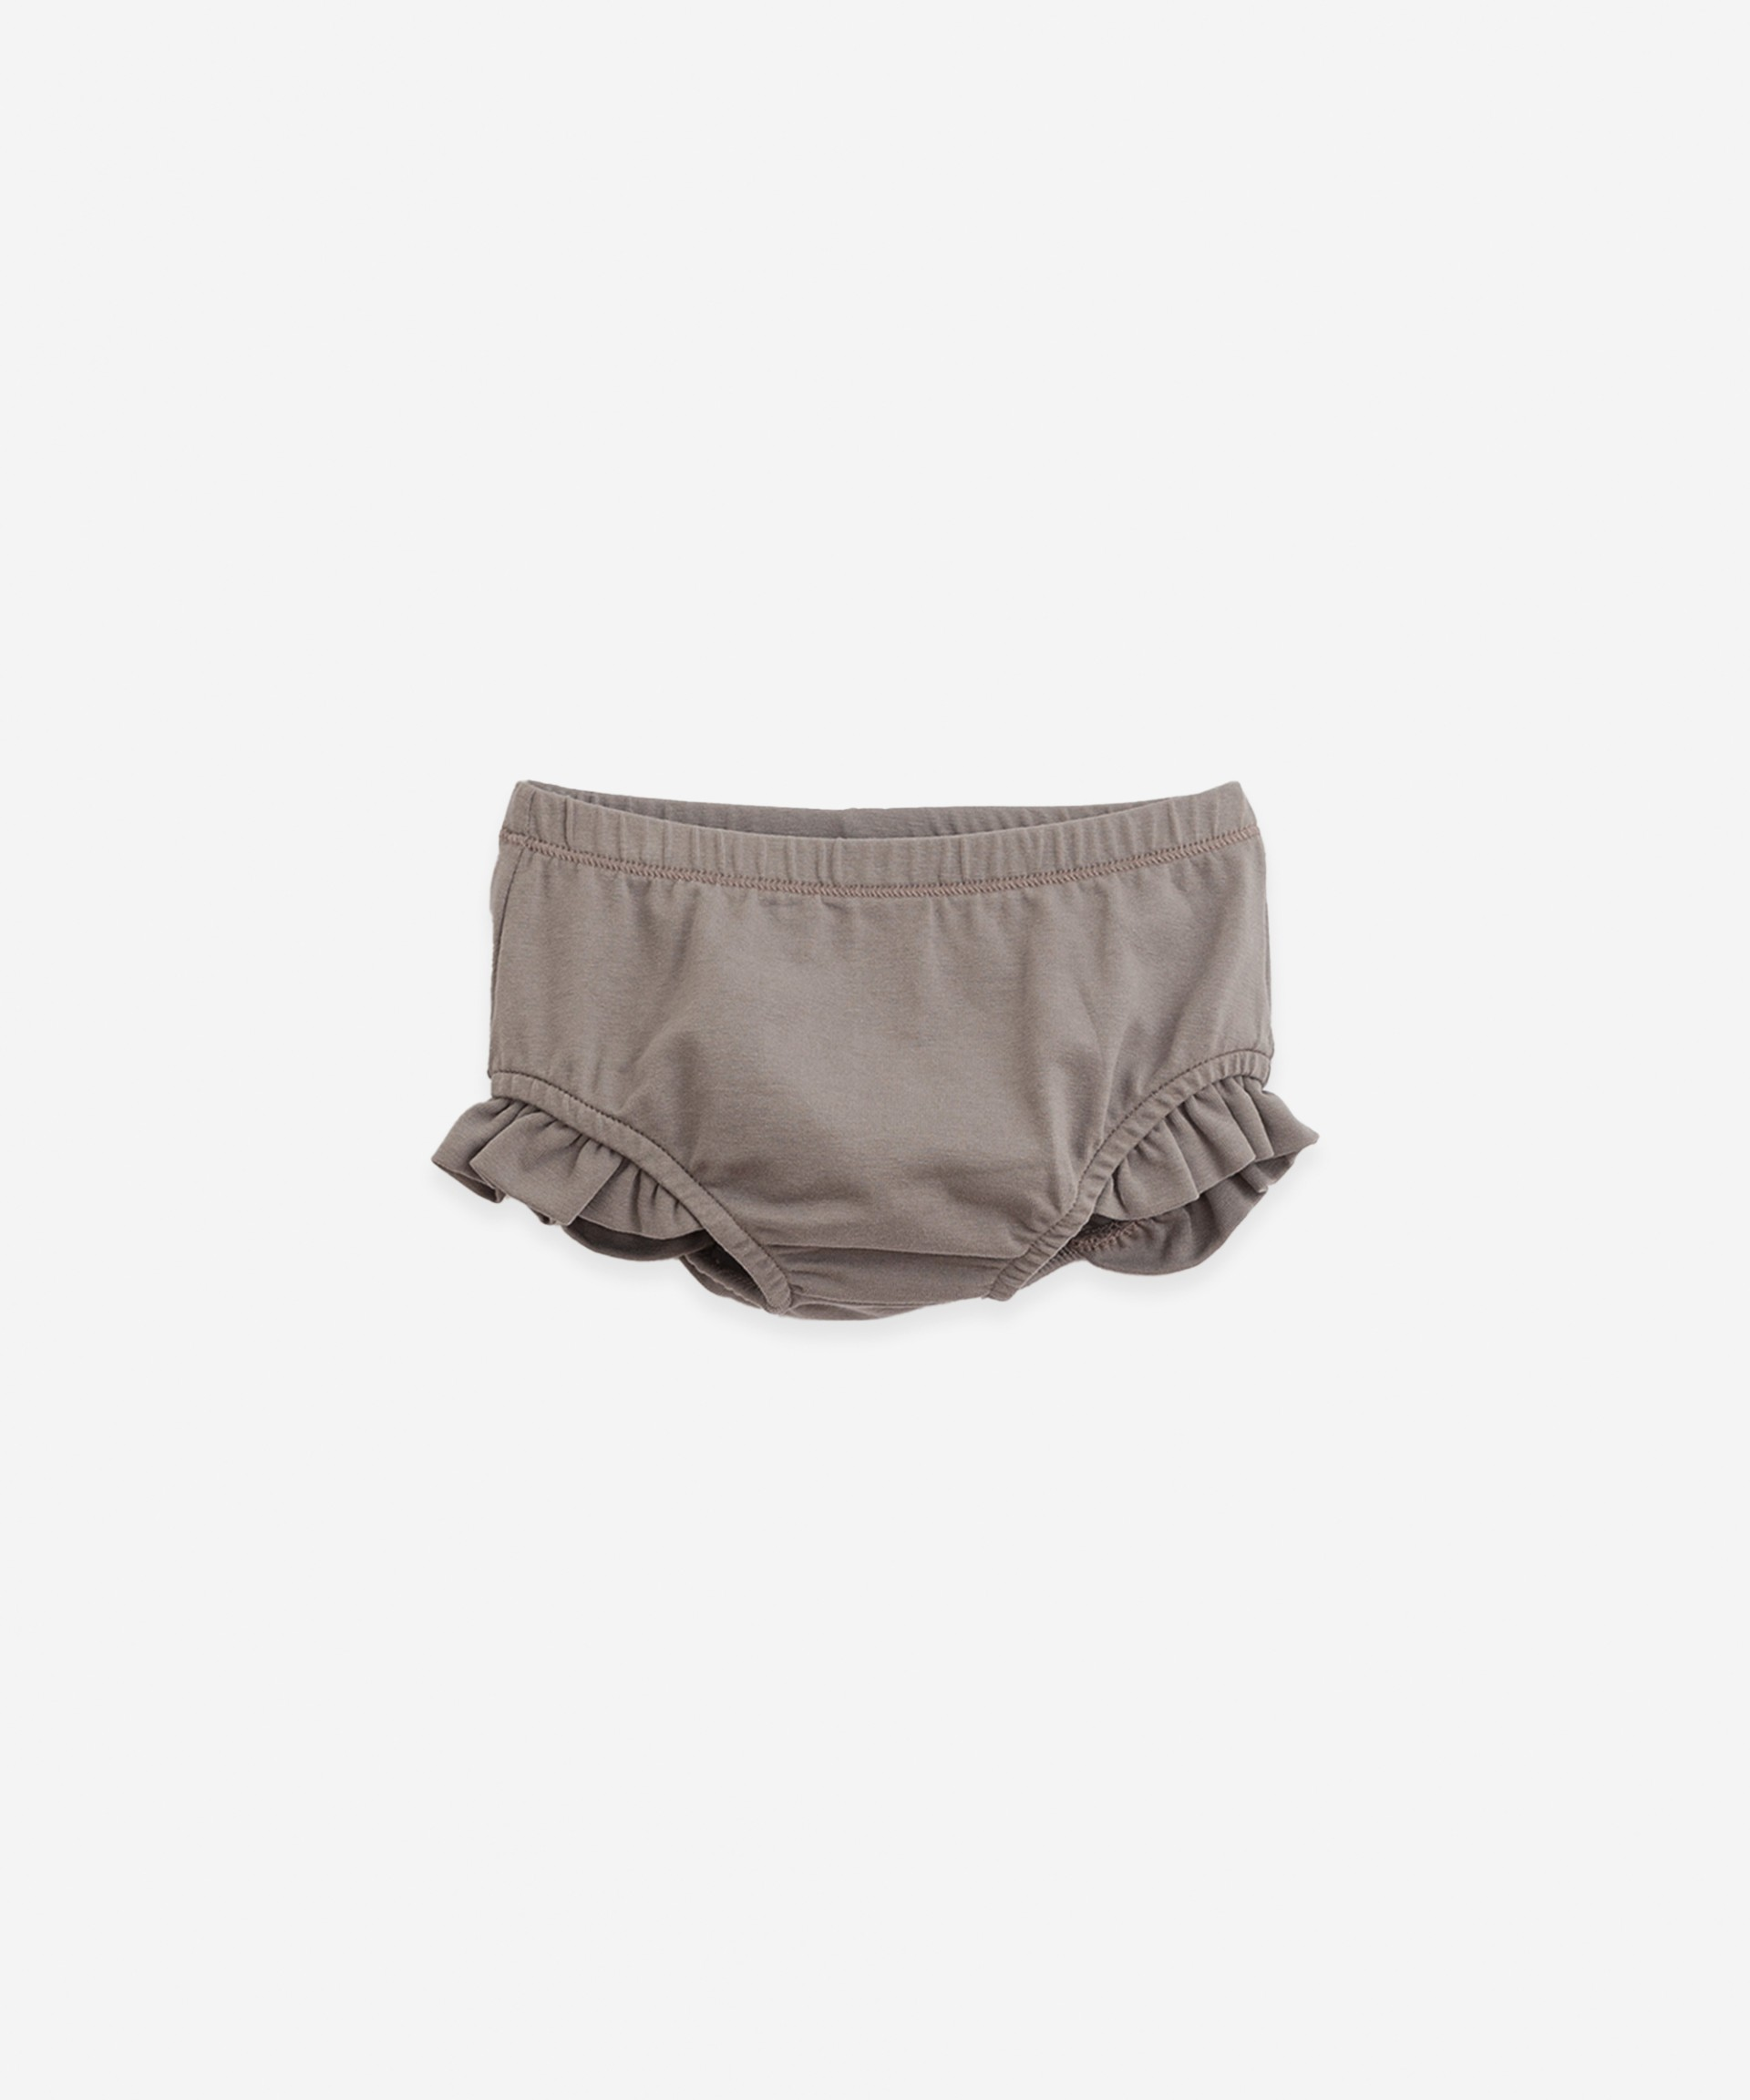 Organic cotton underpants | Botany